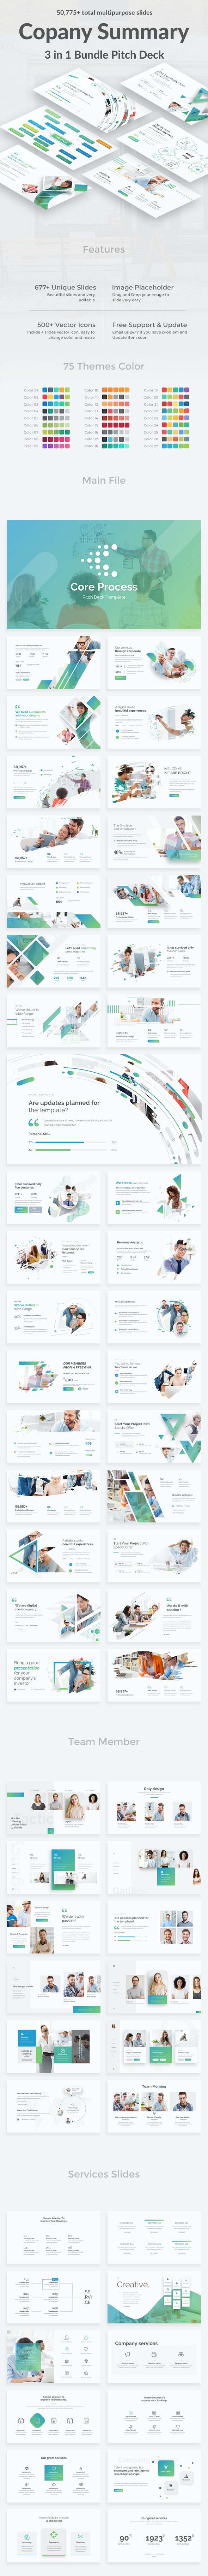 Company Summary 3 in 1 Pitch Deck Bundle Powerpoint Template - Business PowerPoint Templates